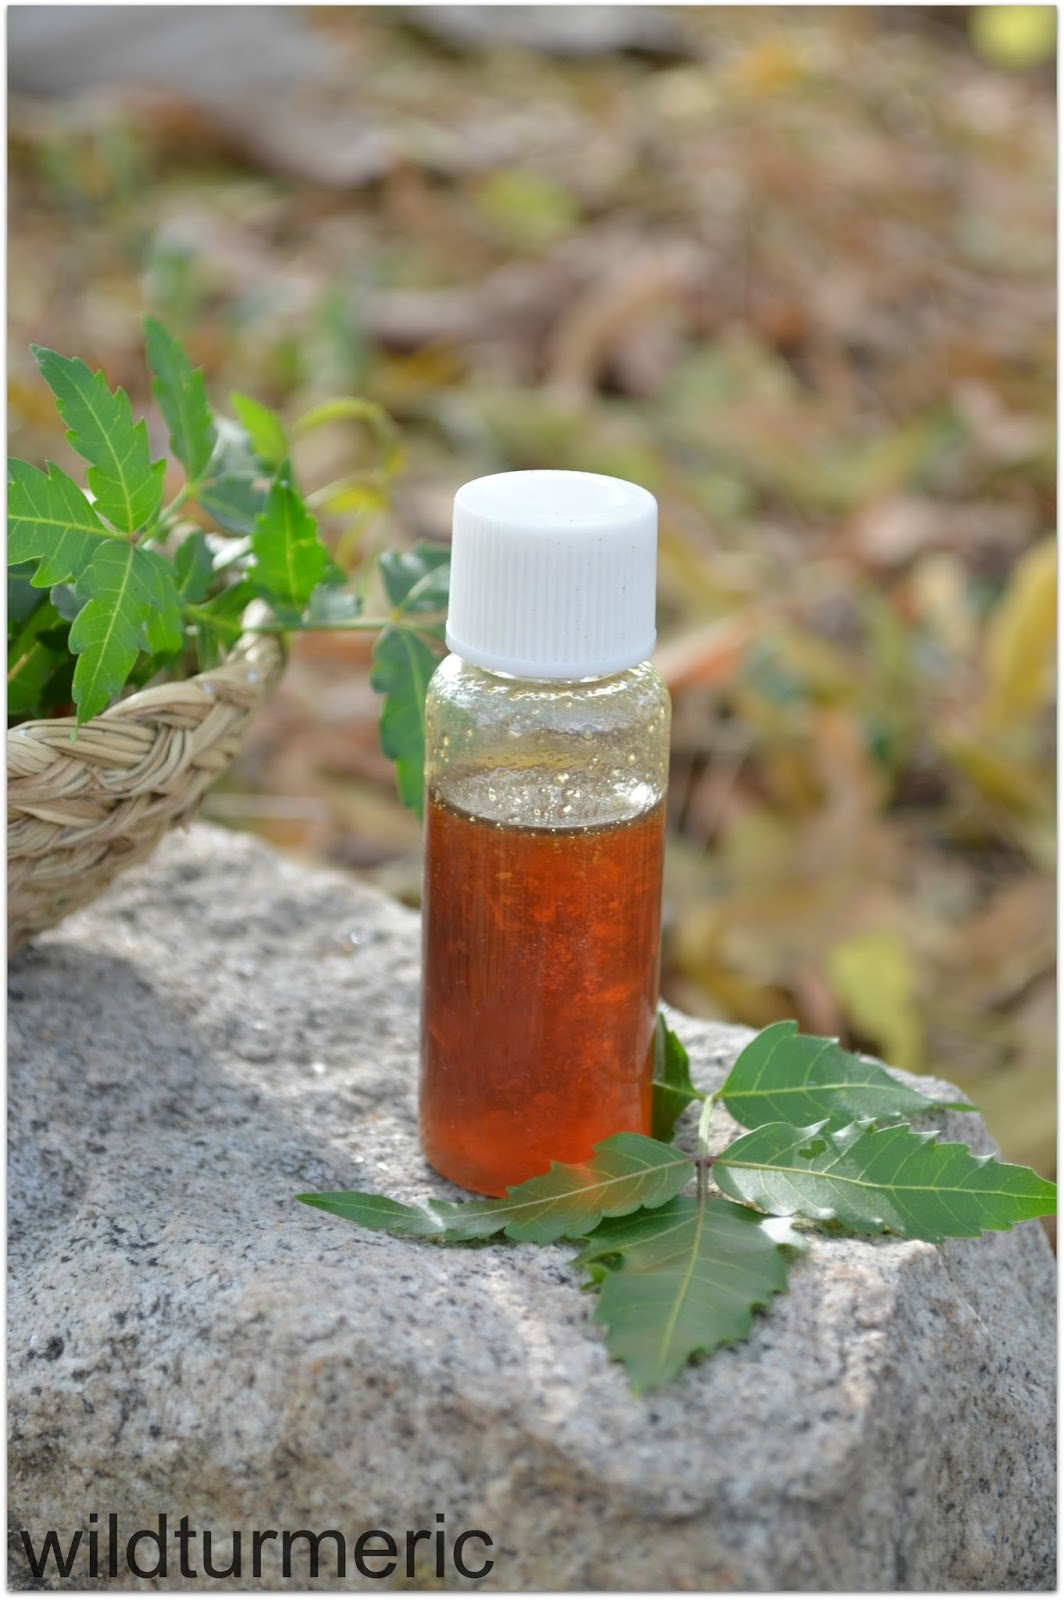 39 Fascinating Uses and Benefits Of Neem Oil - Tips Bulletin